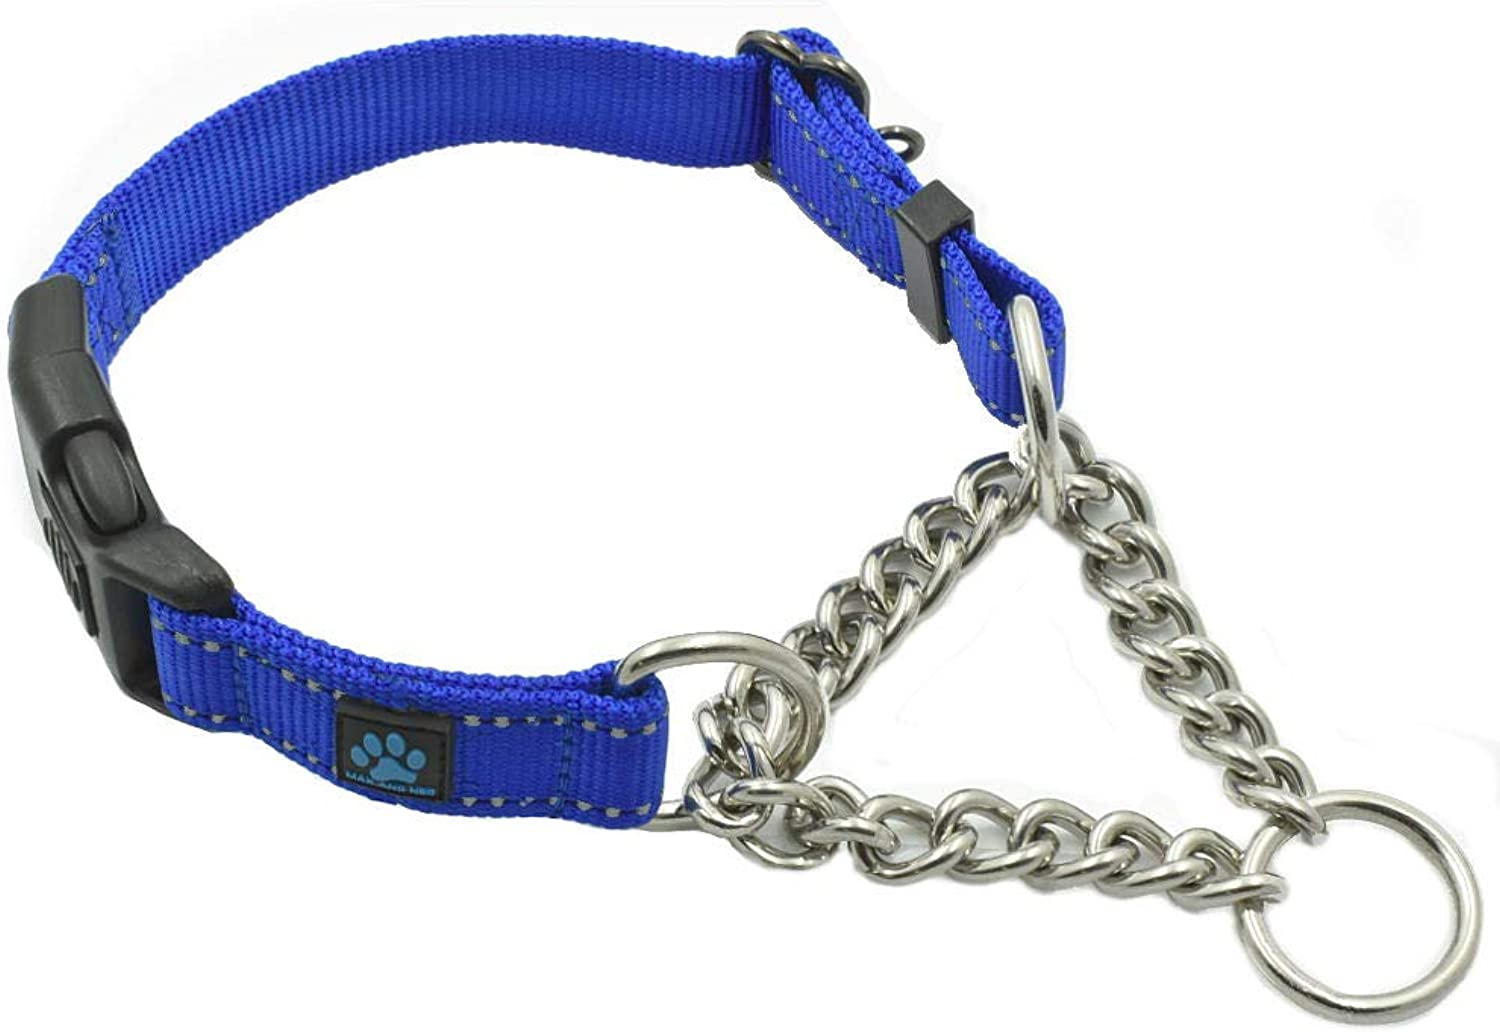 Max and Neo Stainless Steel Chain Martingale Collar  We Donate a Collar to a Dog Rescue for Every Collar Sold (Medium Large, bluee)